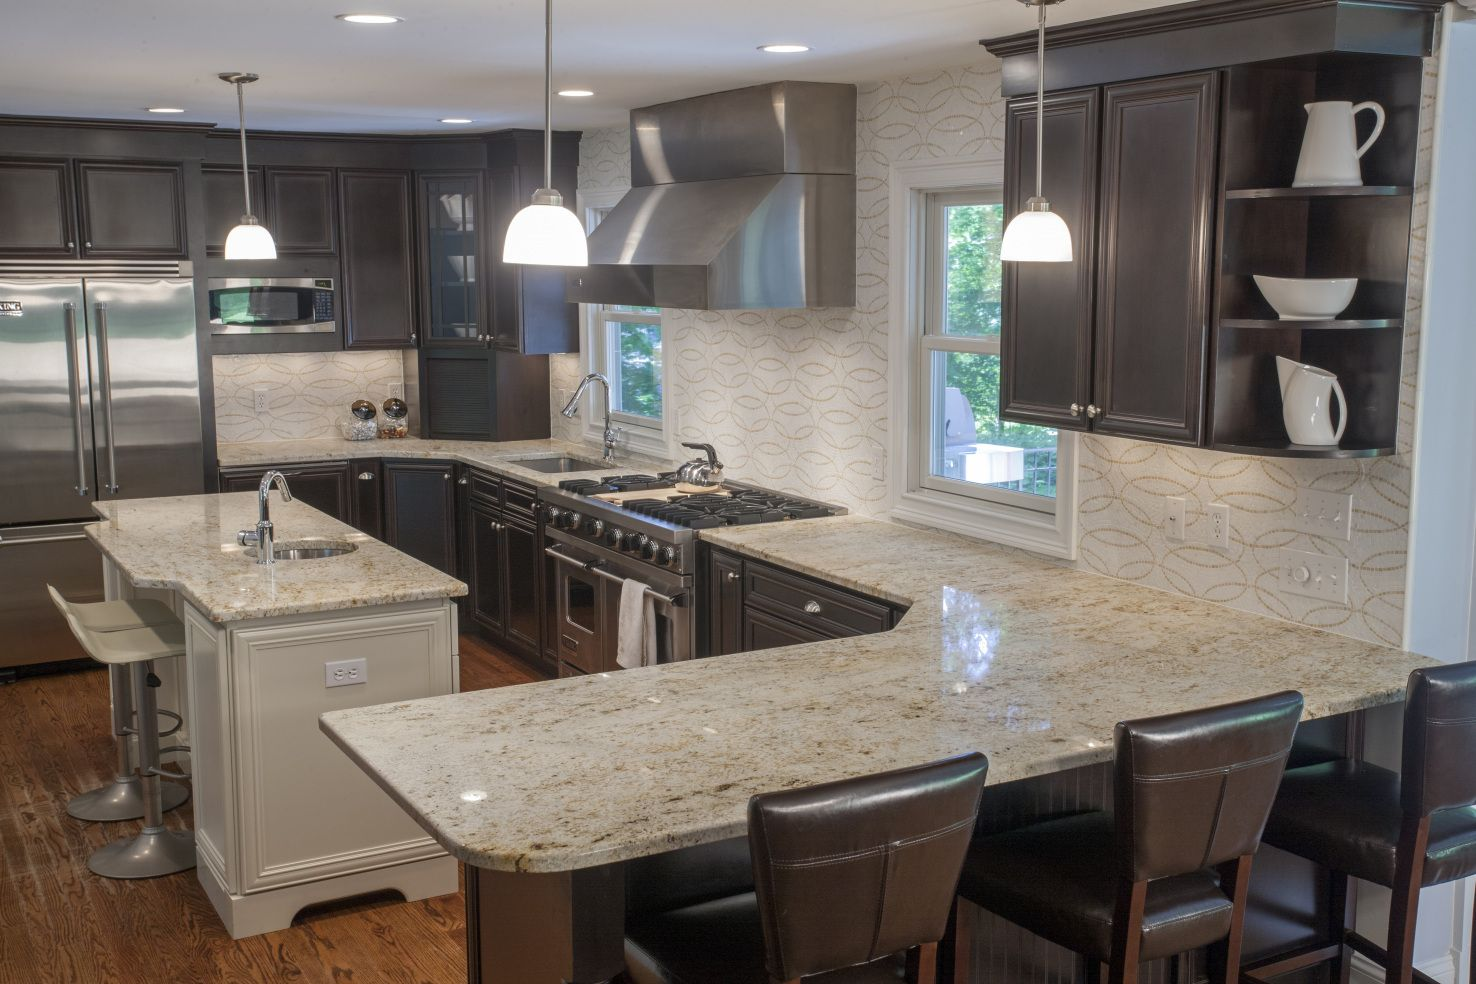 2018 How To Re Polish Granite Countertops   Small Kitchen Island Ideas With  Seating Check More